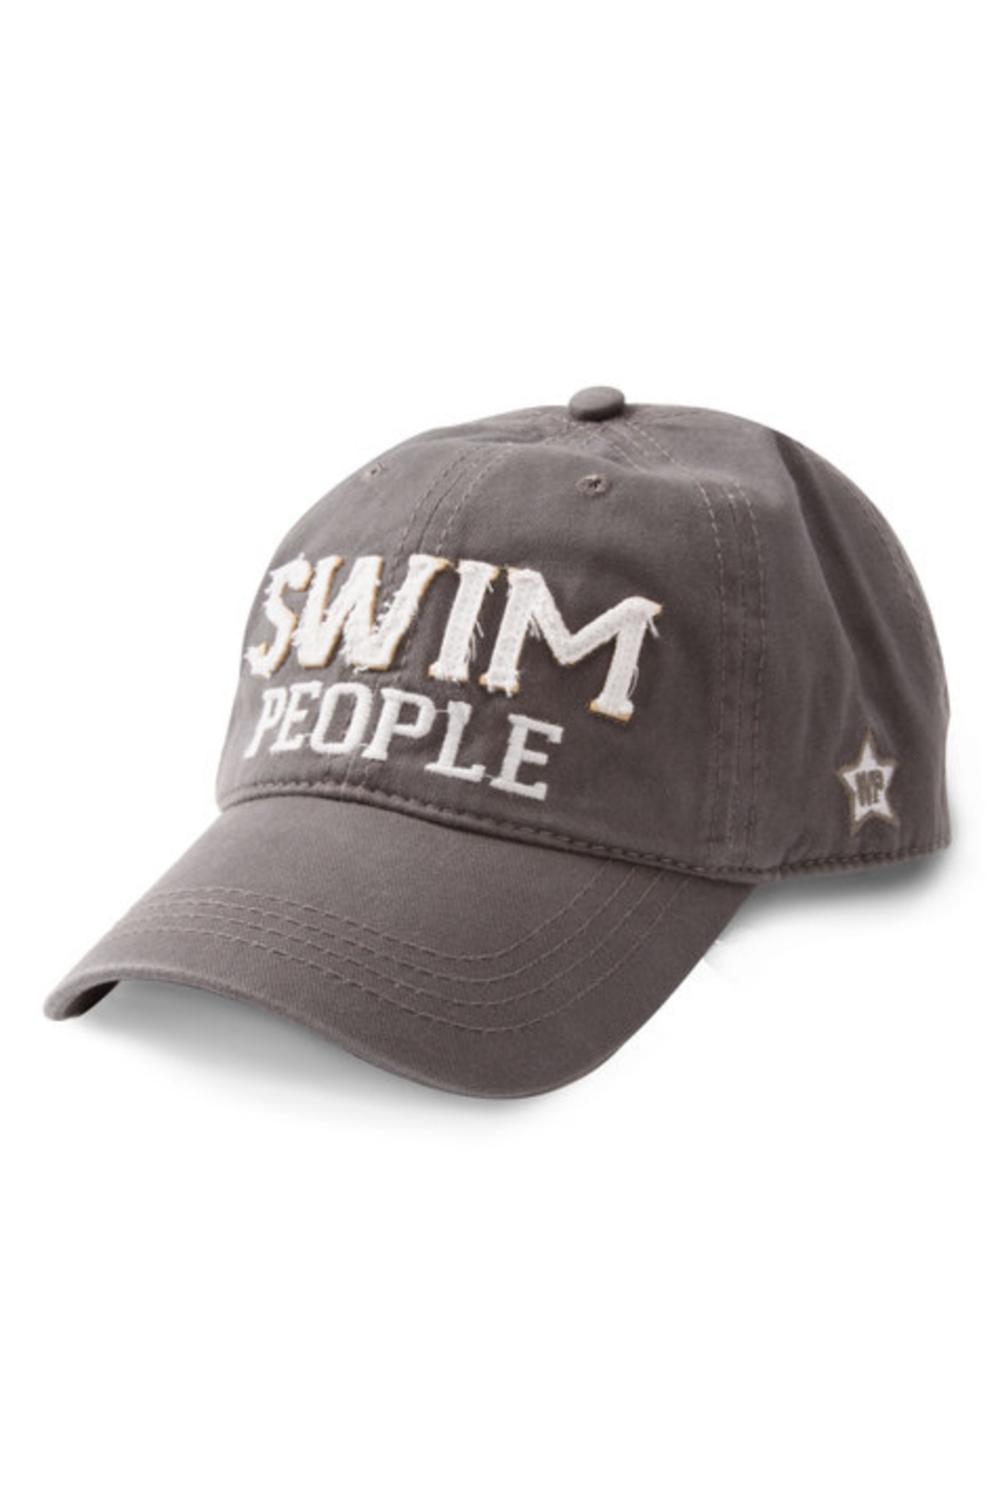 Adjustable Hat - Swim People